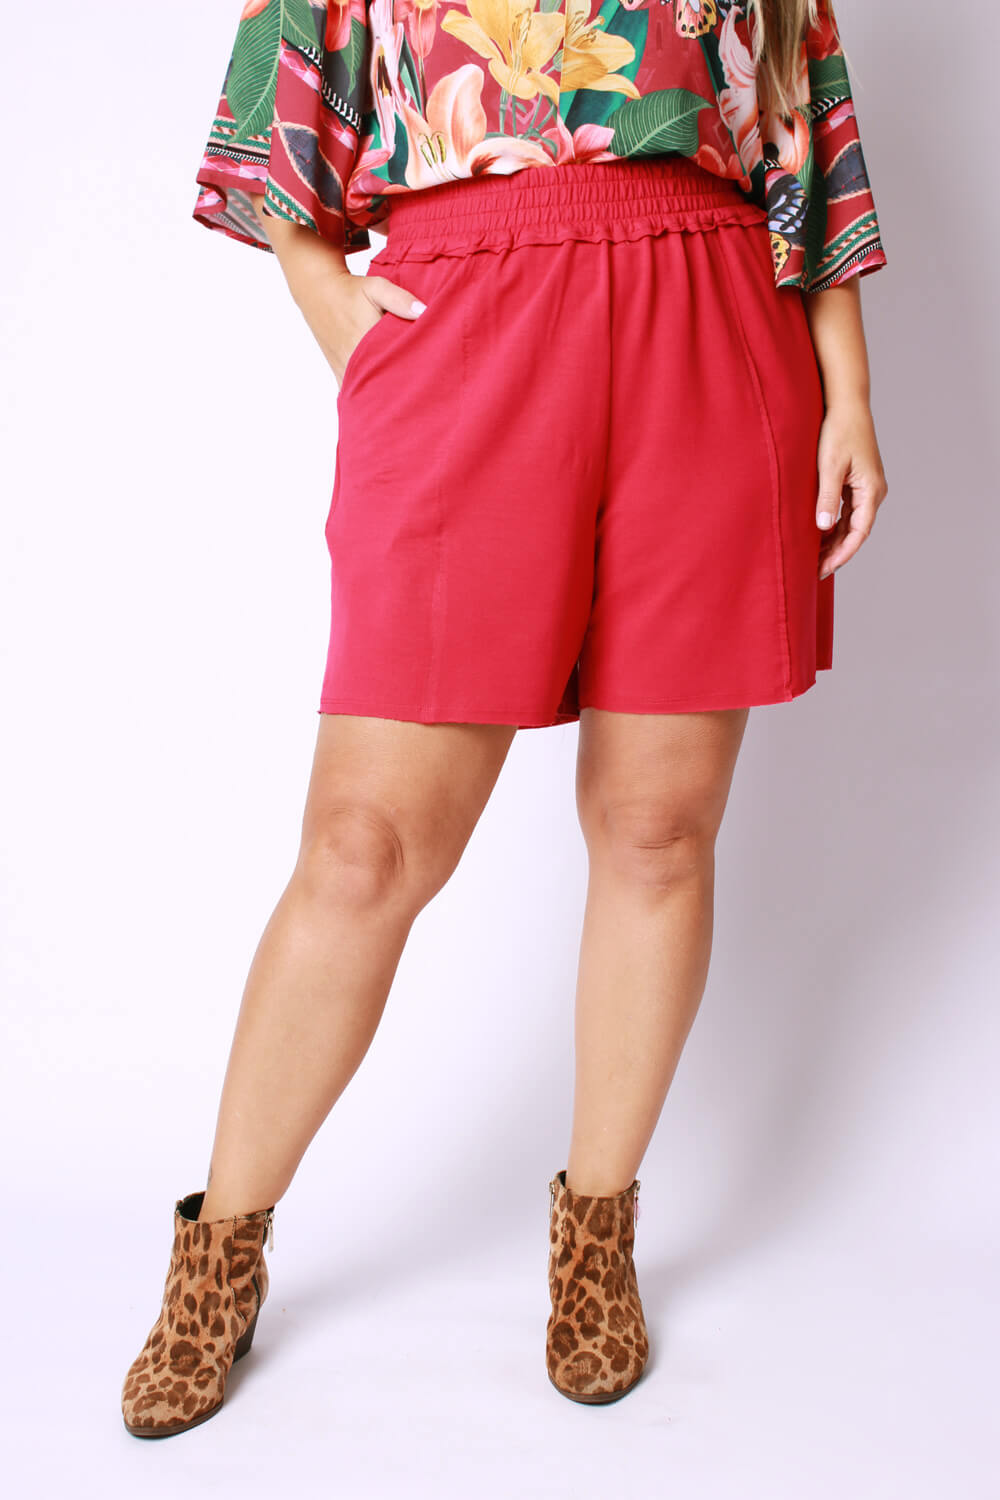 BEM ESTAR -PLUS SIZE SHORTS MOLETOM PINK